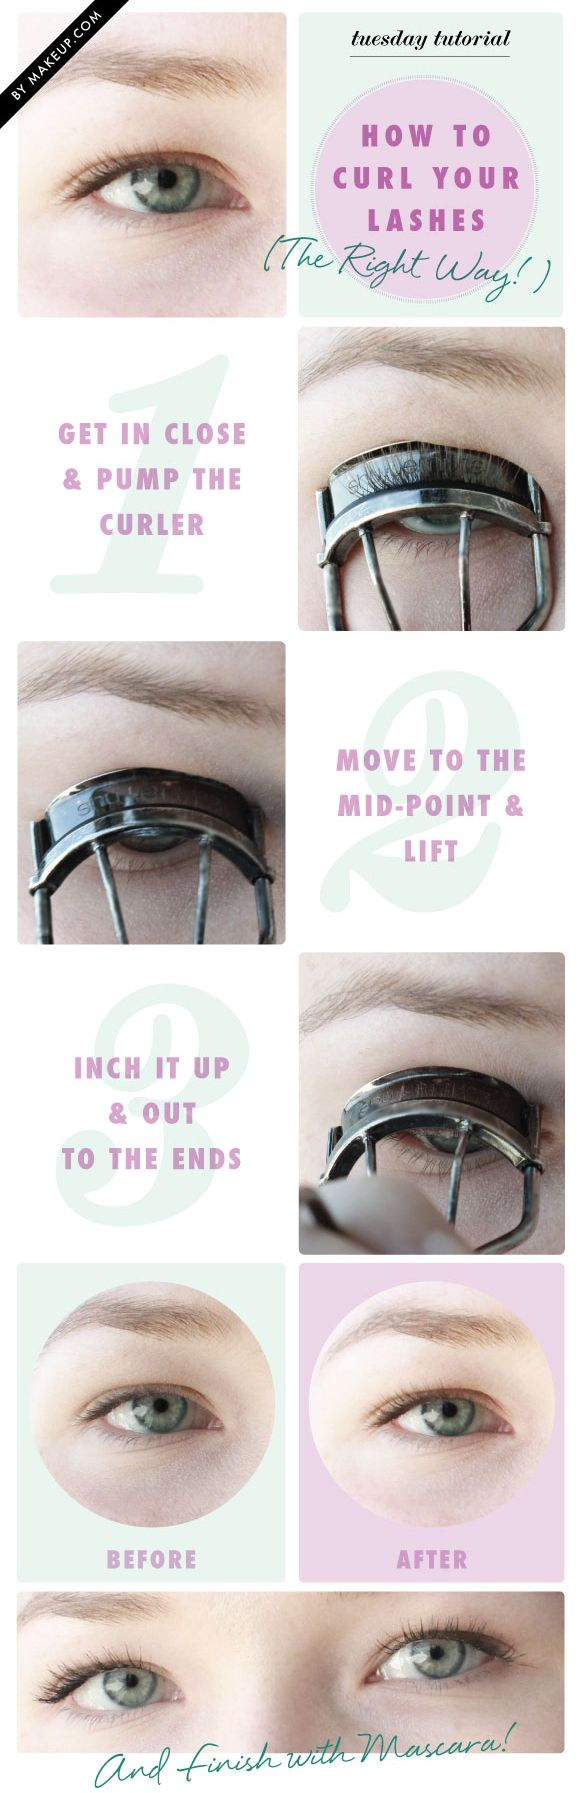 Confused about how to curl your lashes? We've got a step-by-step tutorial to give you the curl you need for your eyelashes!